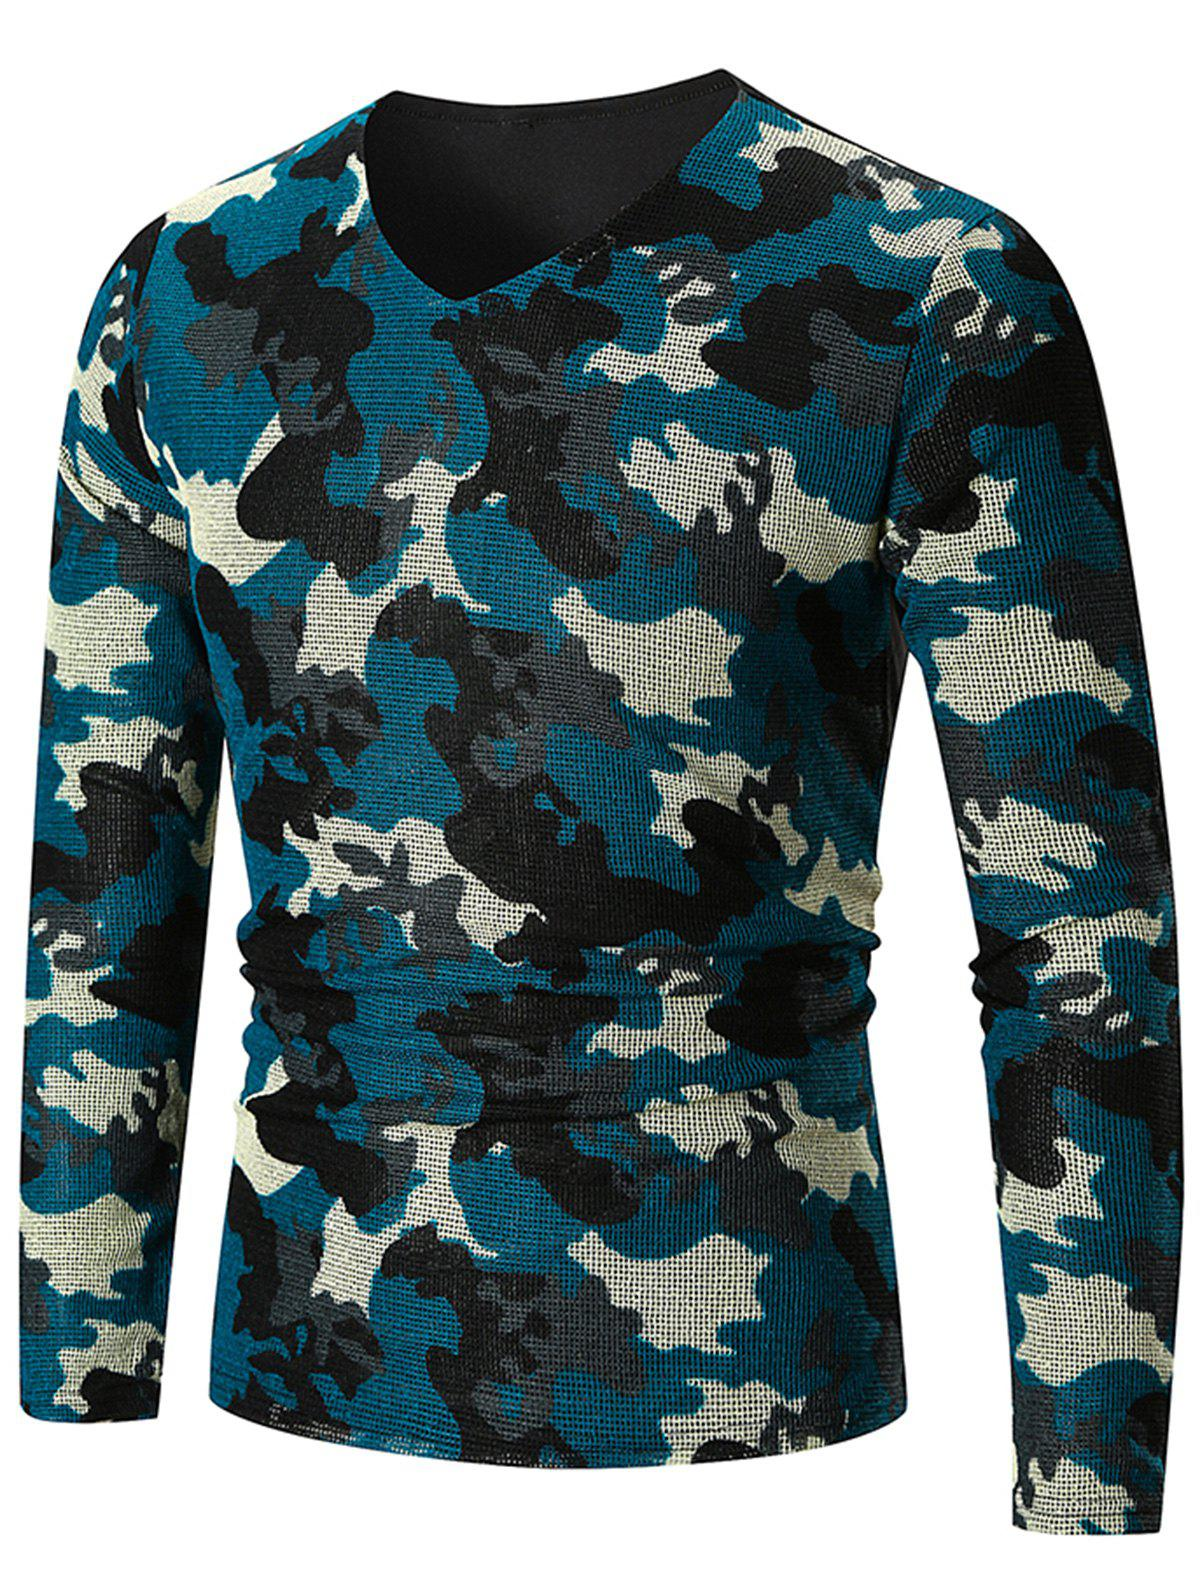 Long Sleeve Camo Pattern V Neck T-shirt - BLUE IVY 2XL